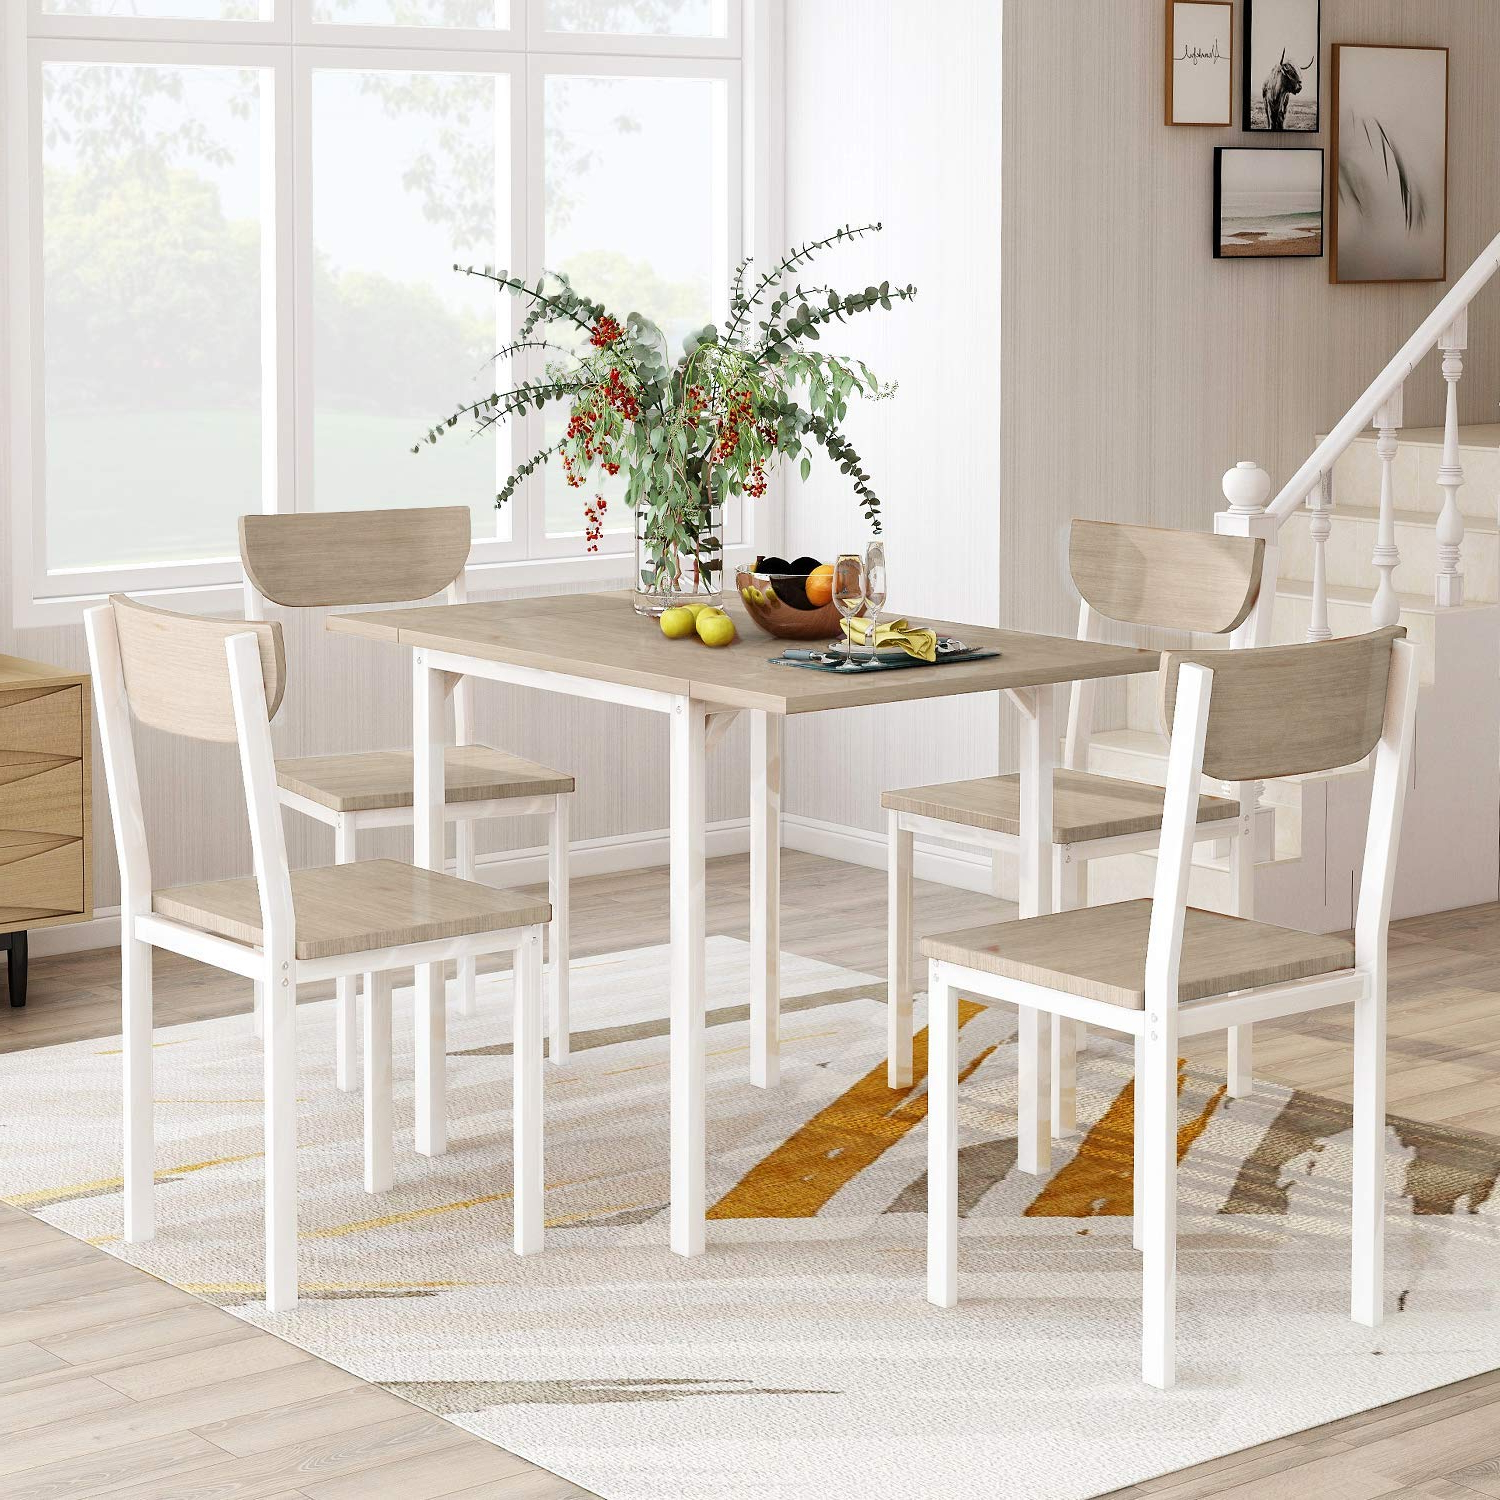 Flieks 5 Piece Modern Dining Table Set With A Drop Leaf Dining Table And 4 Chairs Home Kitchen Furniture Dinette Set (light Grey/white) With Famous Modern Dining Tables (View 5 of 30)